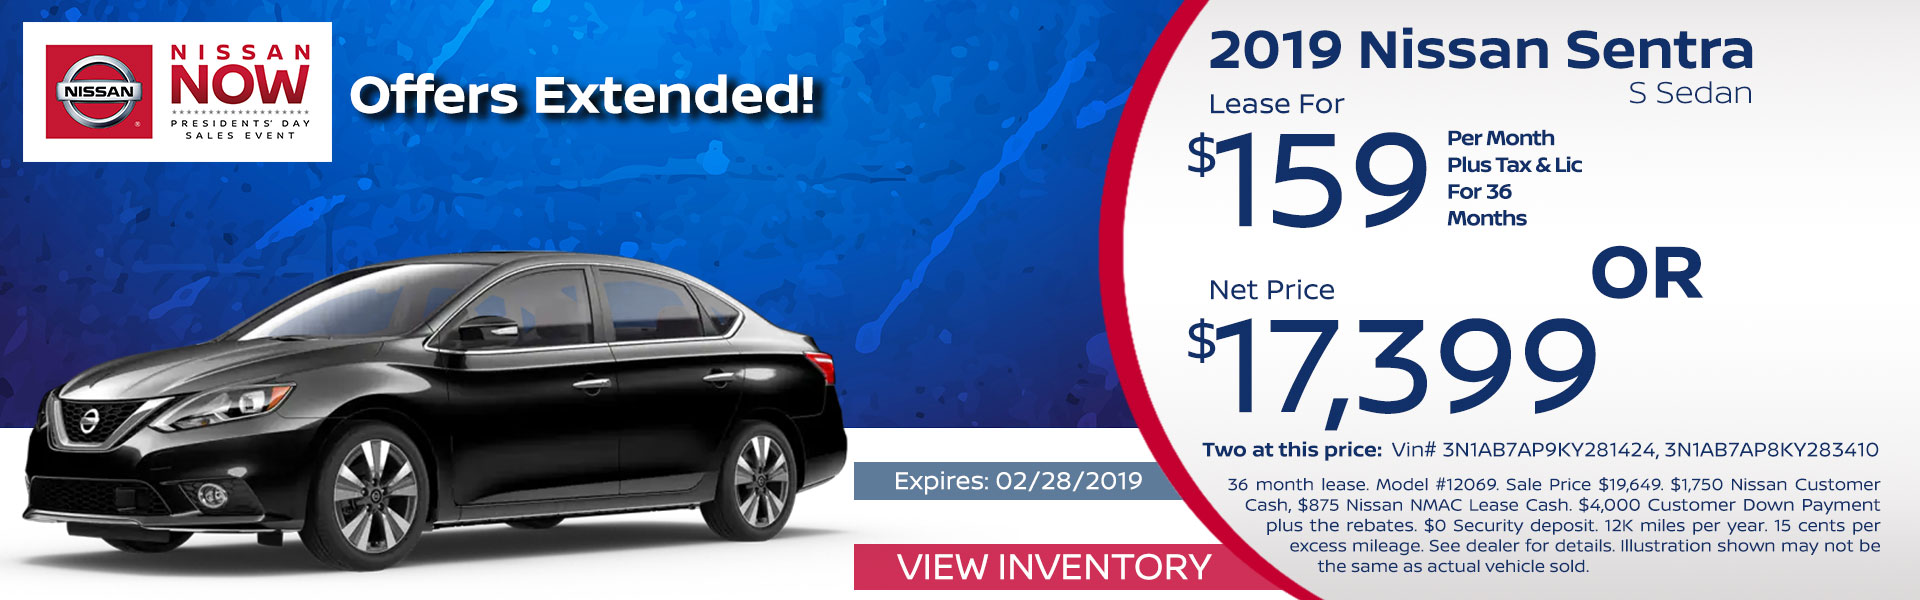 Sentra Lease and Net Price